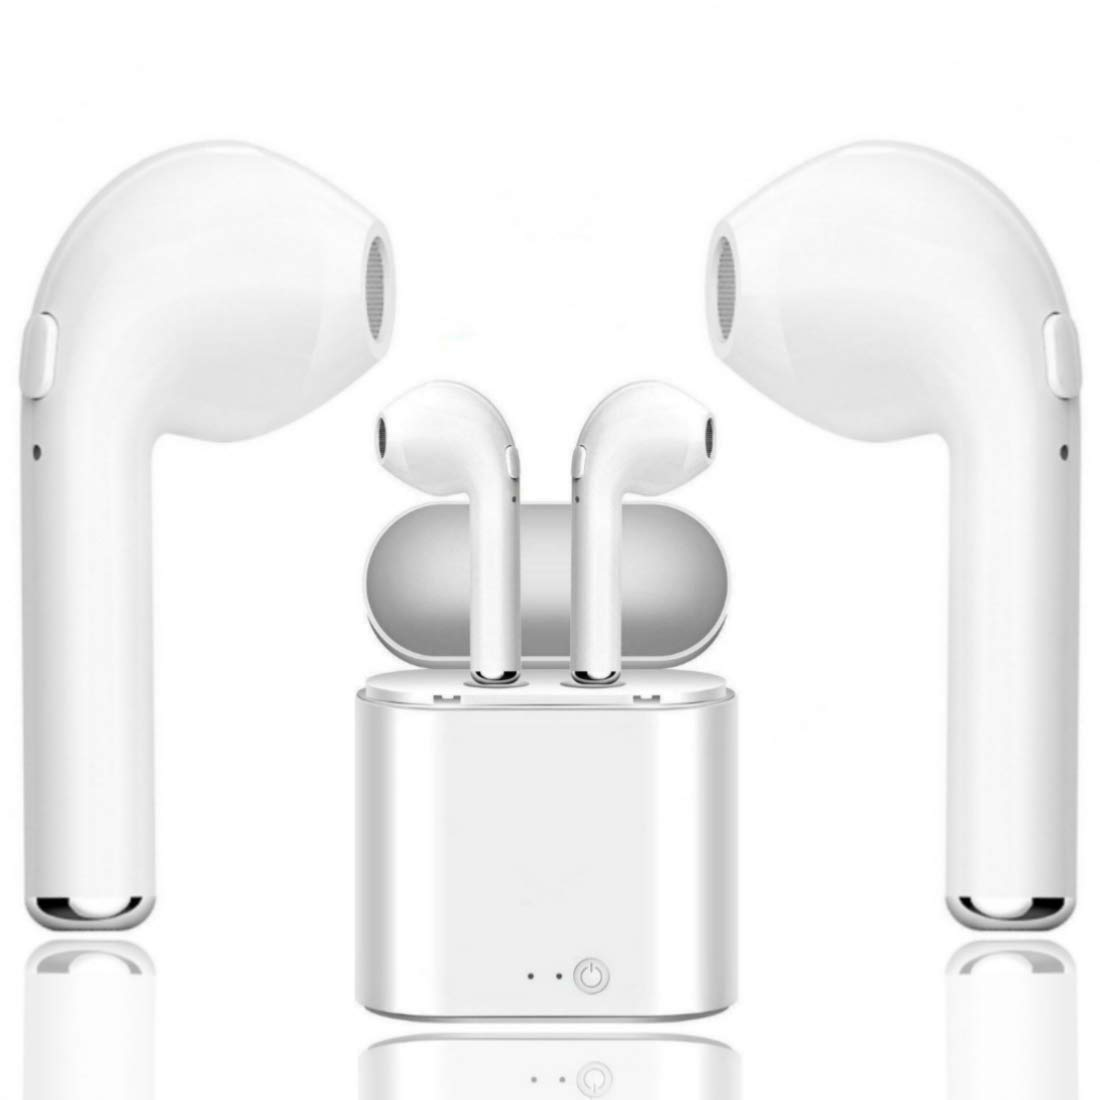 Bluetooth Headphones, Wireless Earbuds Stereo Sound Noise Canceling